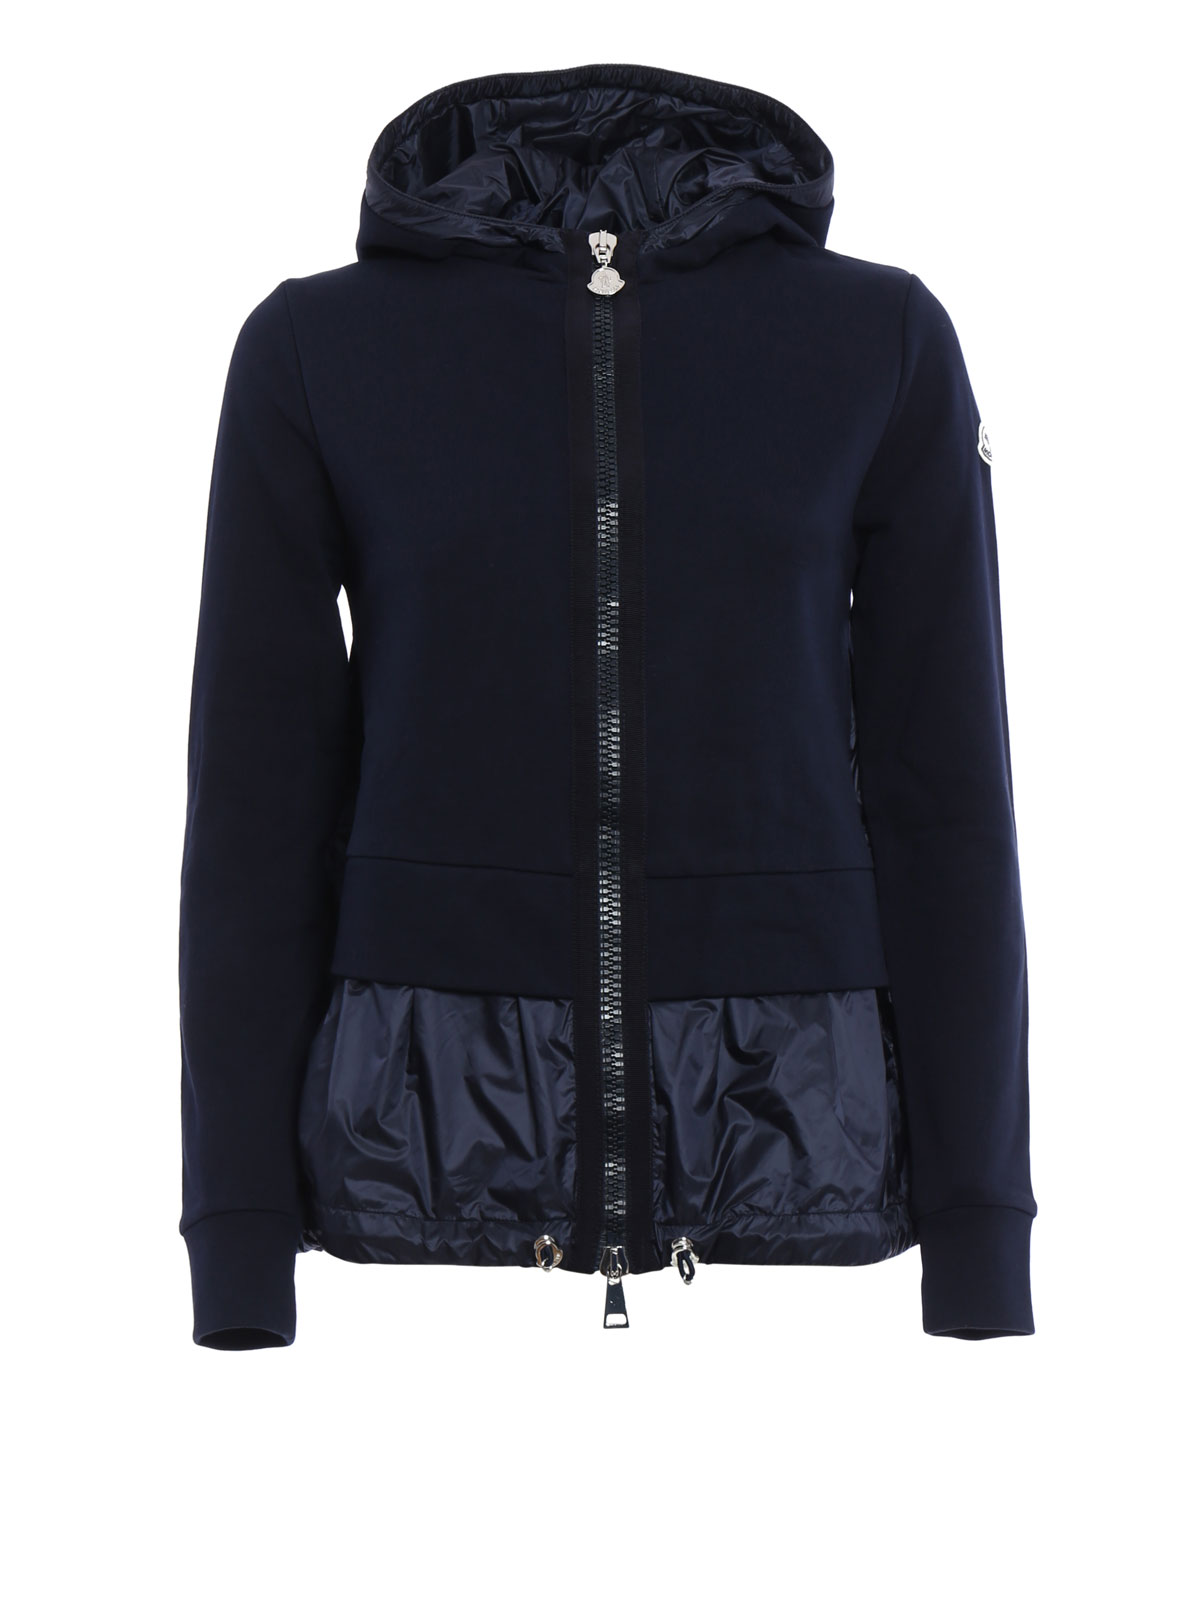 cb6f1c607 Moncler - Cotton and nylon hoodie - Sweatshirts   Sweaters - B1 093 ...